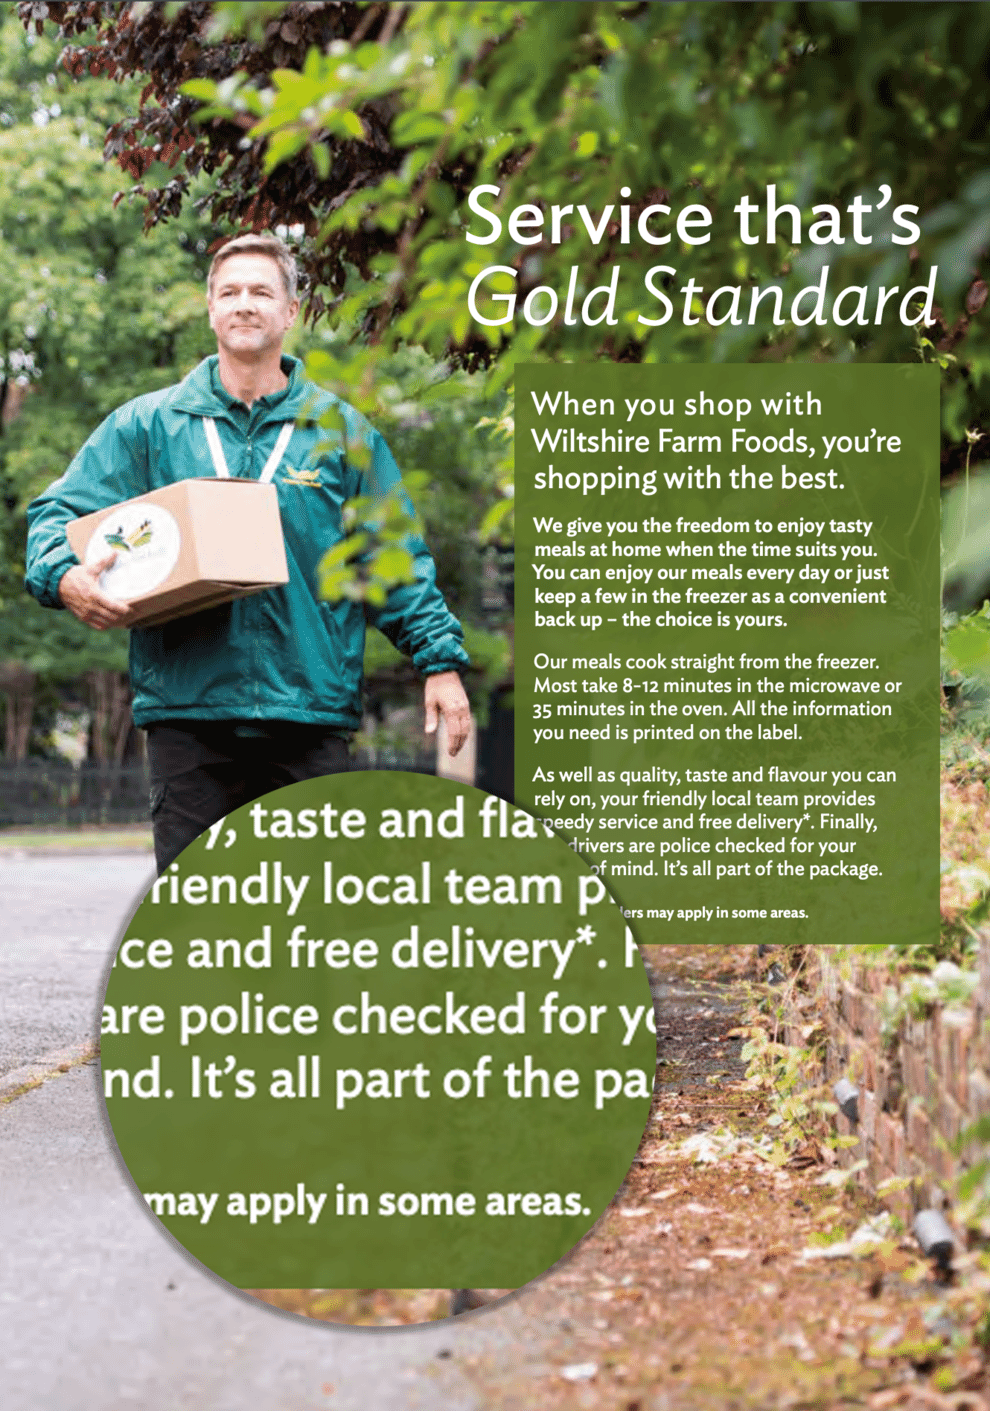 By offering free delivery and police checking drivers Wiltshire Farm Foods makes buying from them a 'no brainer' decision.